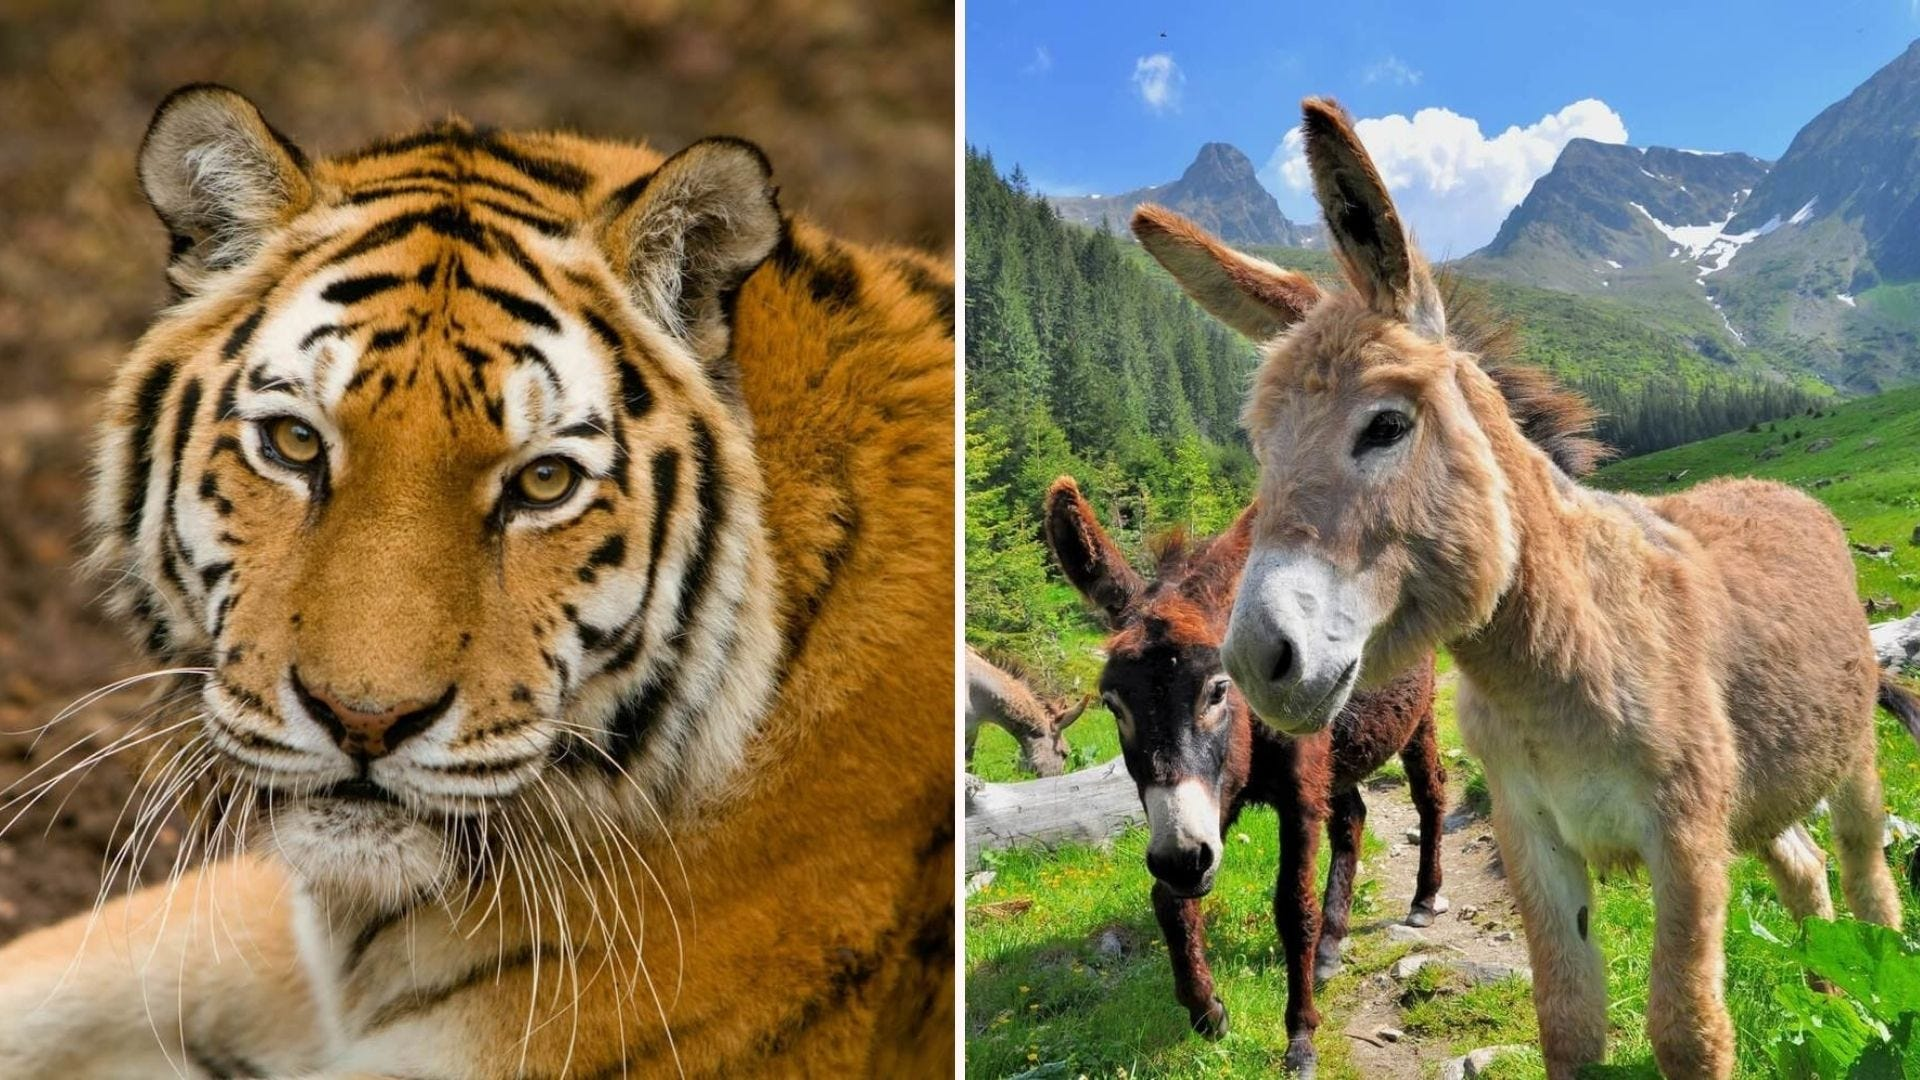 A tiger and donkeys, both of which you can symbolically adopt at the World Animal Foundation site.